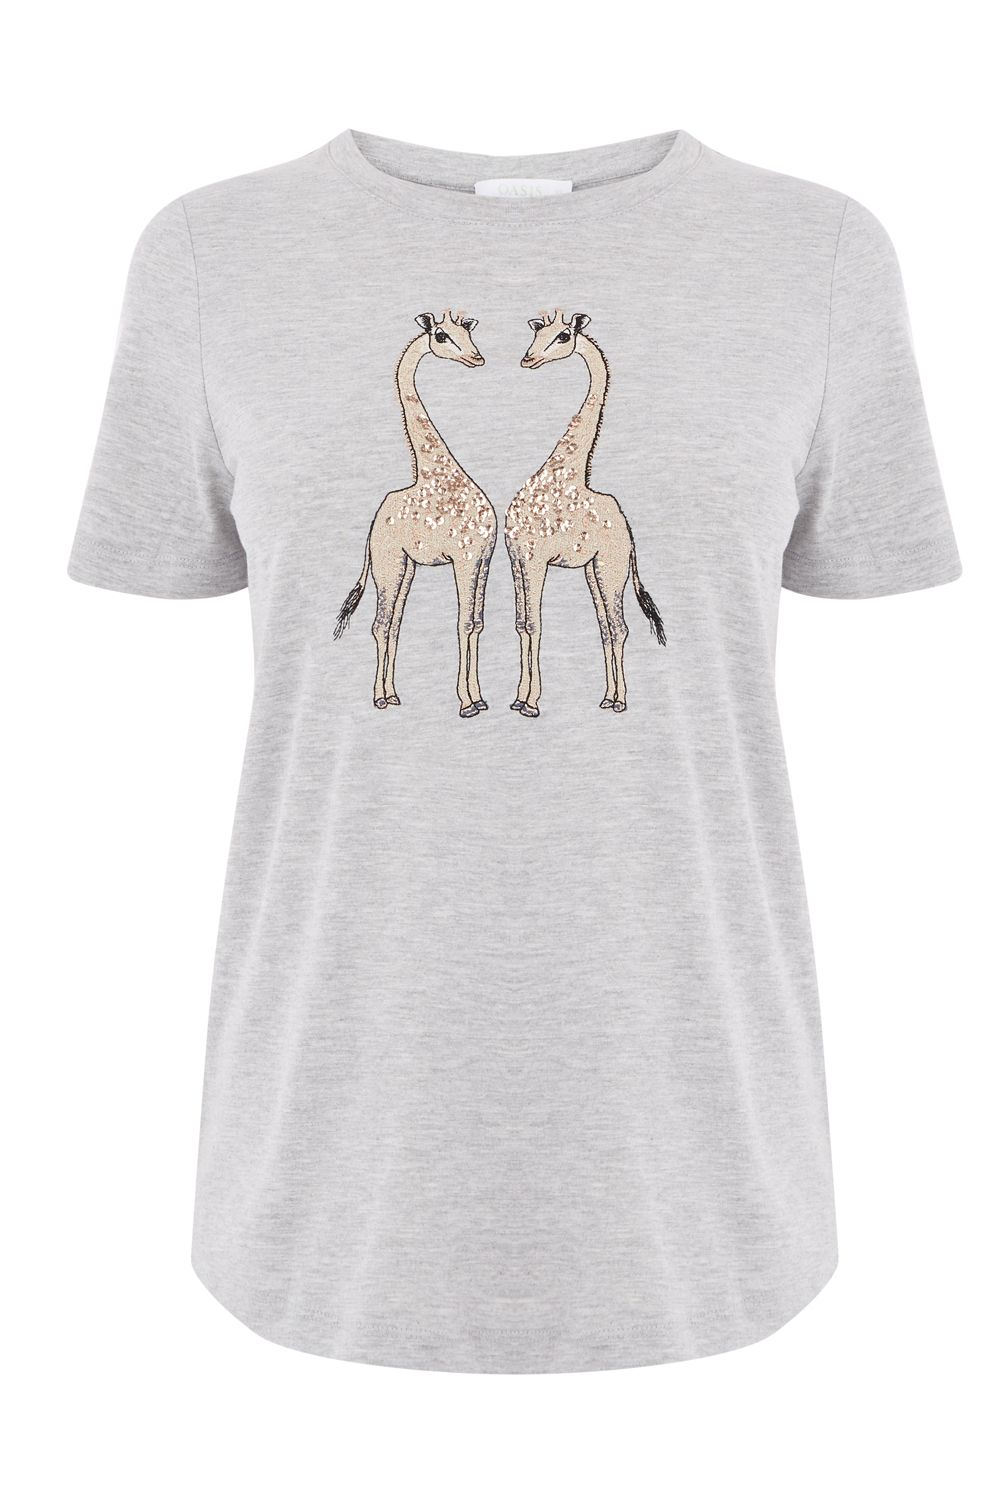 Oasis LONDON ZSL GIRAFFE TEE, Multi-Coloured